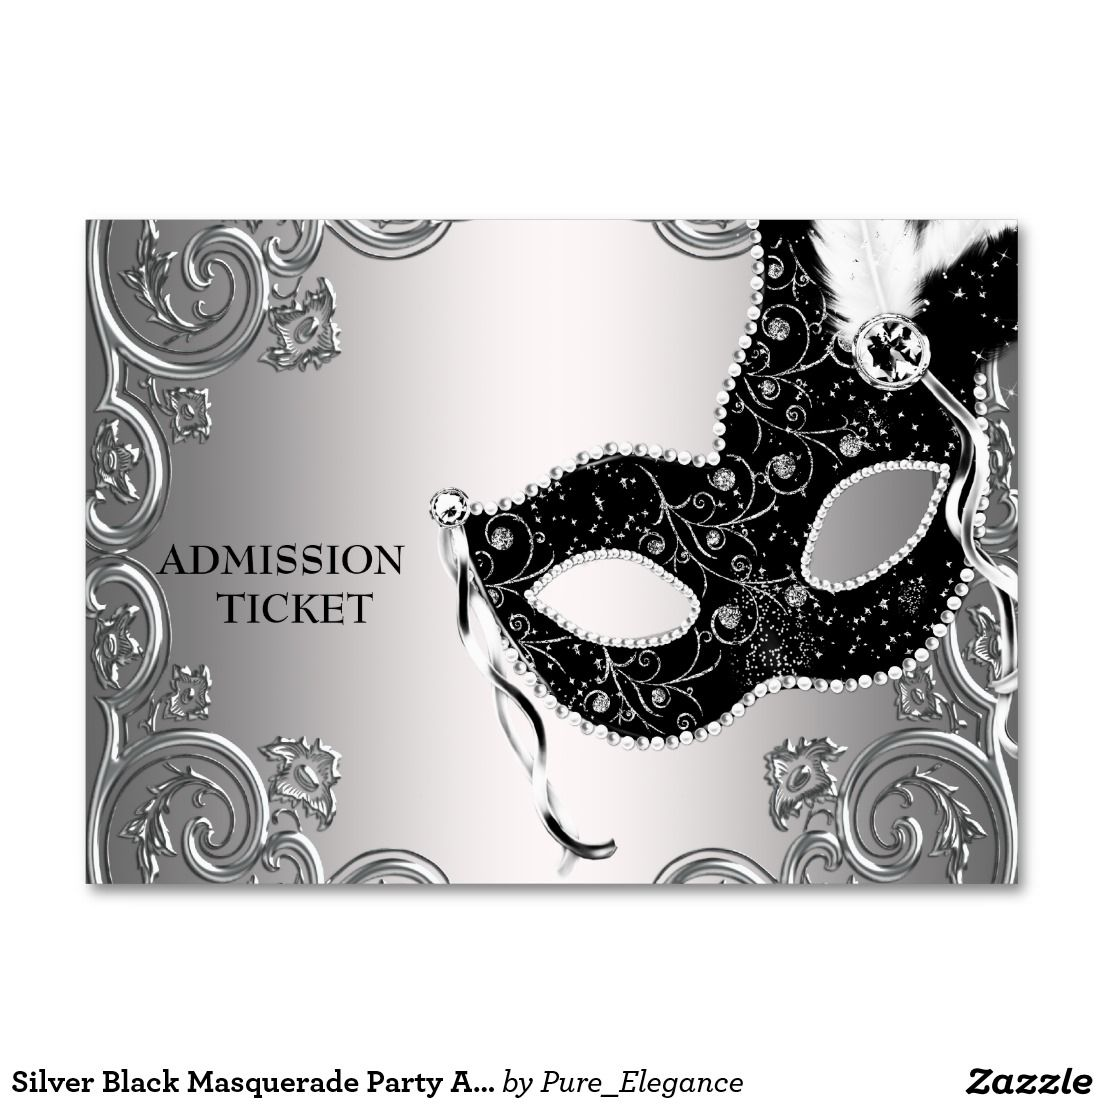 Silver Black Masquerade Party Admission Tickets | Admission ticket ...